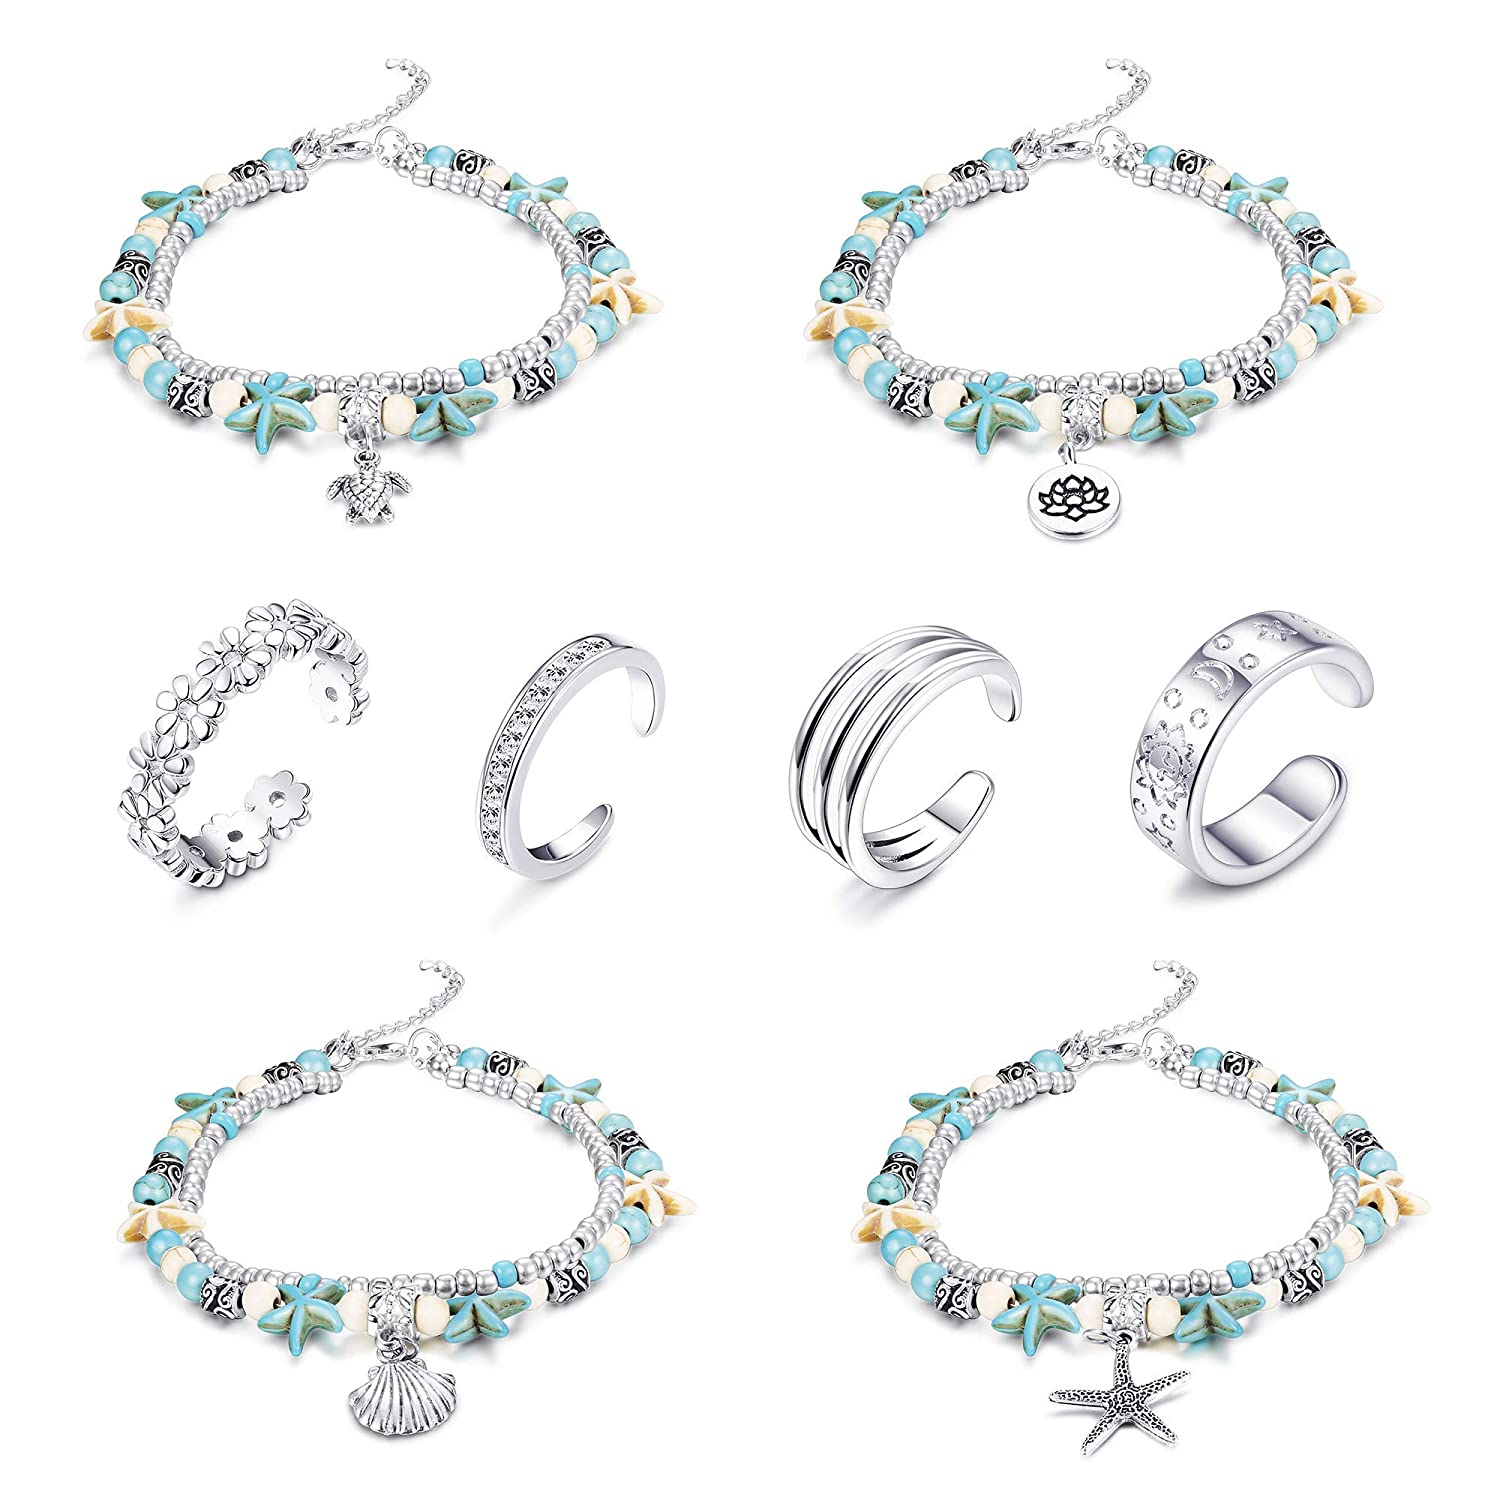 Milacolato-16PCS Women Anklet Elastic Crystal Toe Rings Set Women Girls Beach Ankle Chains Bracelets Set Anklet Foot Jewelry for Women